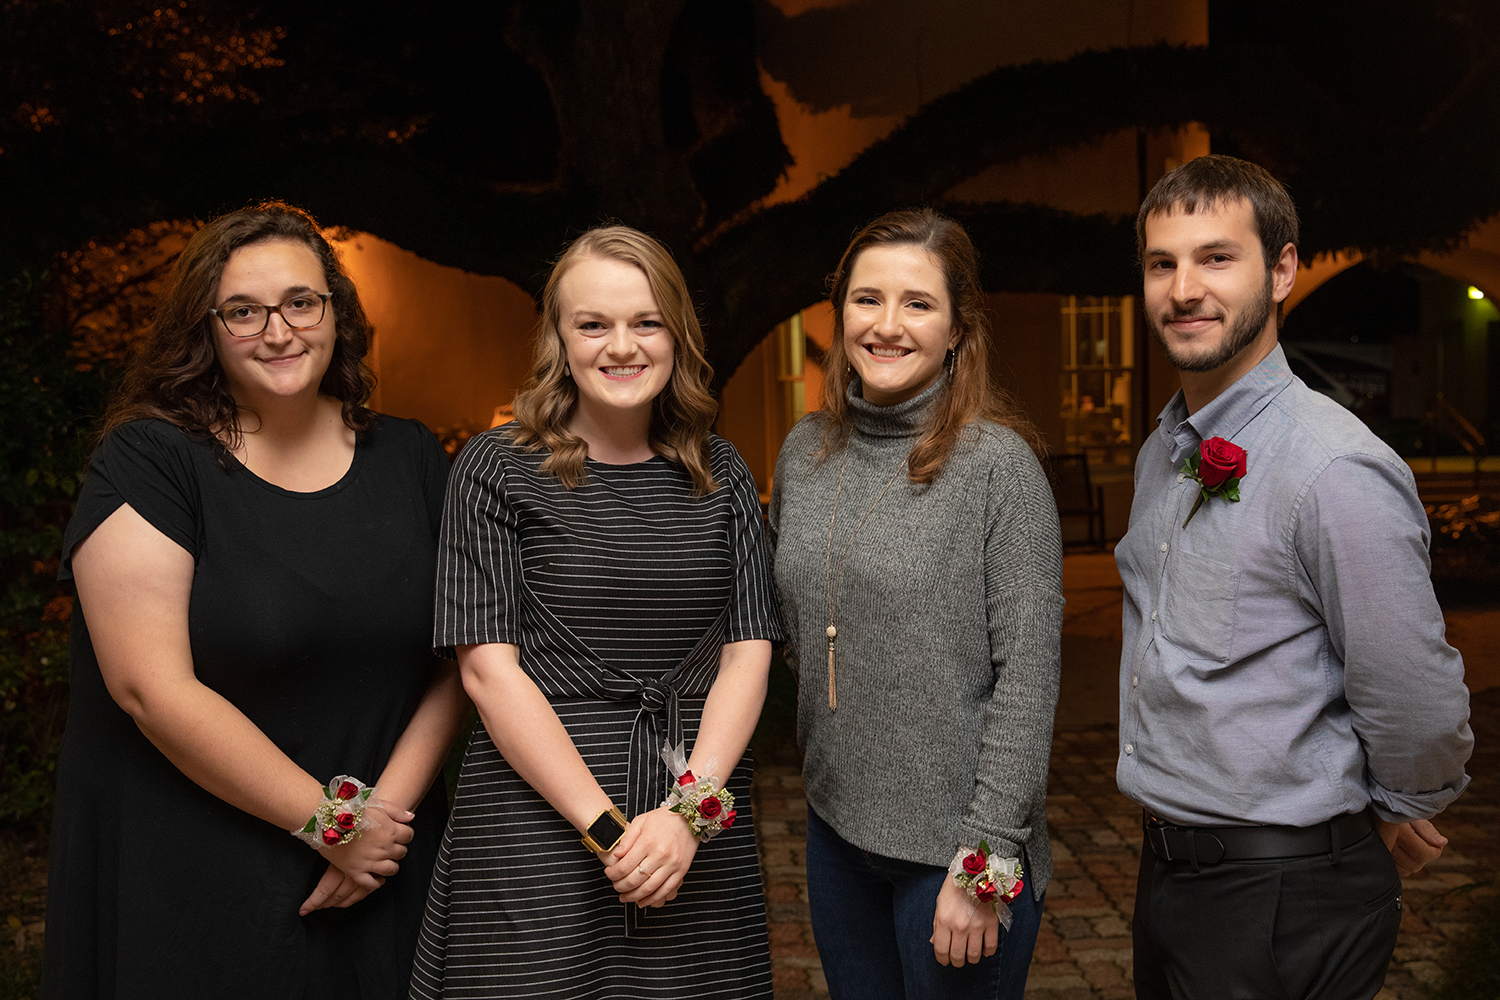 from left: Katie Murphy, School of Architecture and Design; Emily Covington, Department of Communication; Elizabeth Barron, Department of Biology; and Adam J. Trahan, Department of Physics. Caleb Fogle, Department of Psychology, is not pictured. (Photo credit: Rachel Keyes / University of Louisiana at Lafayette)